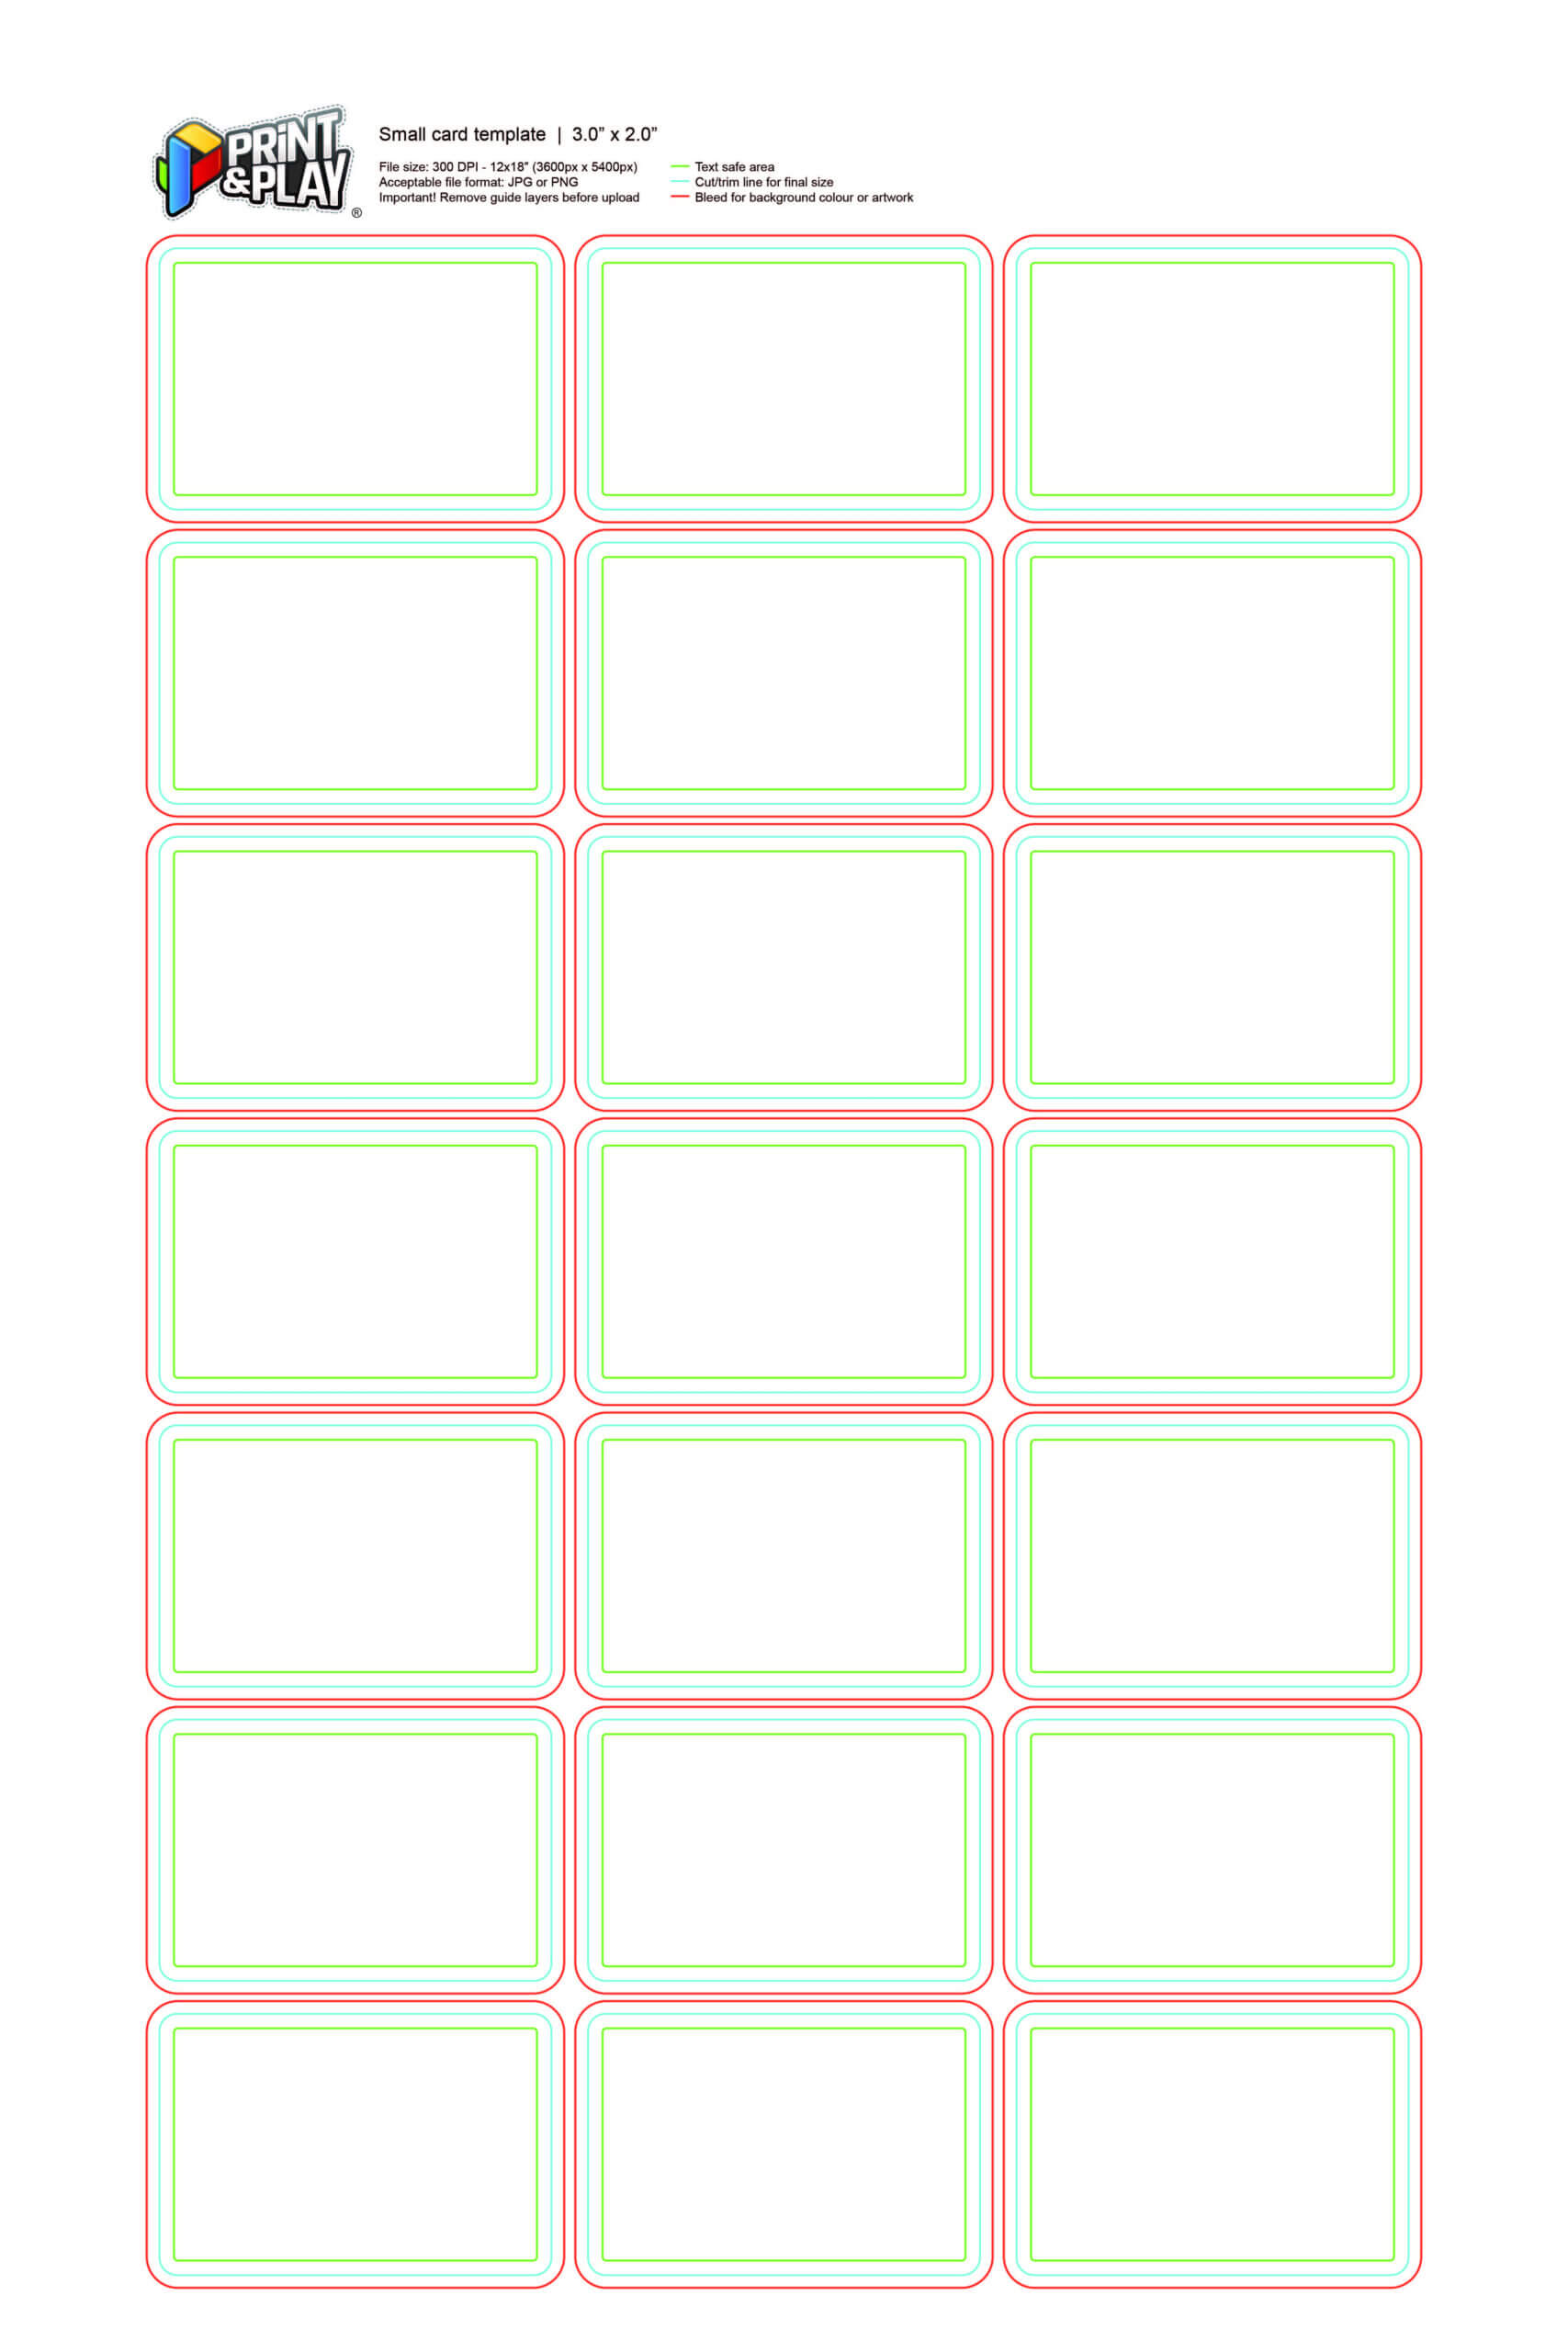 Astounding Playing Card Size Template Ideas Poker Standard Pertaining To Playing Card Template Word